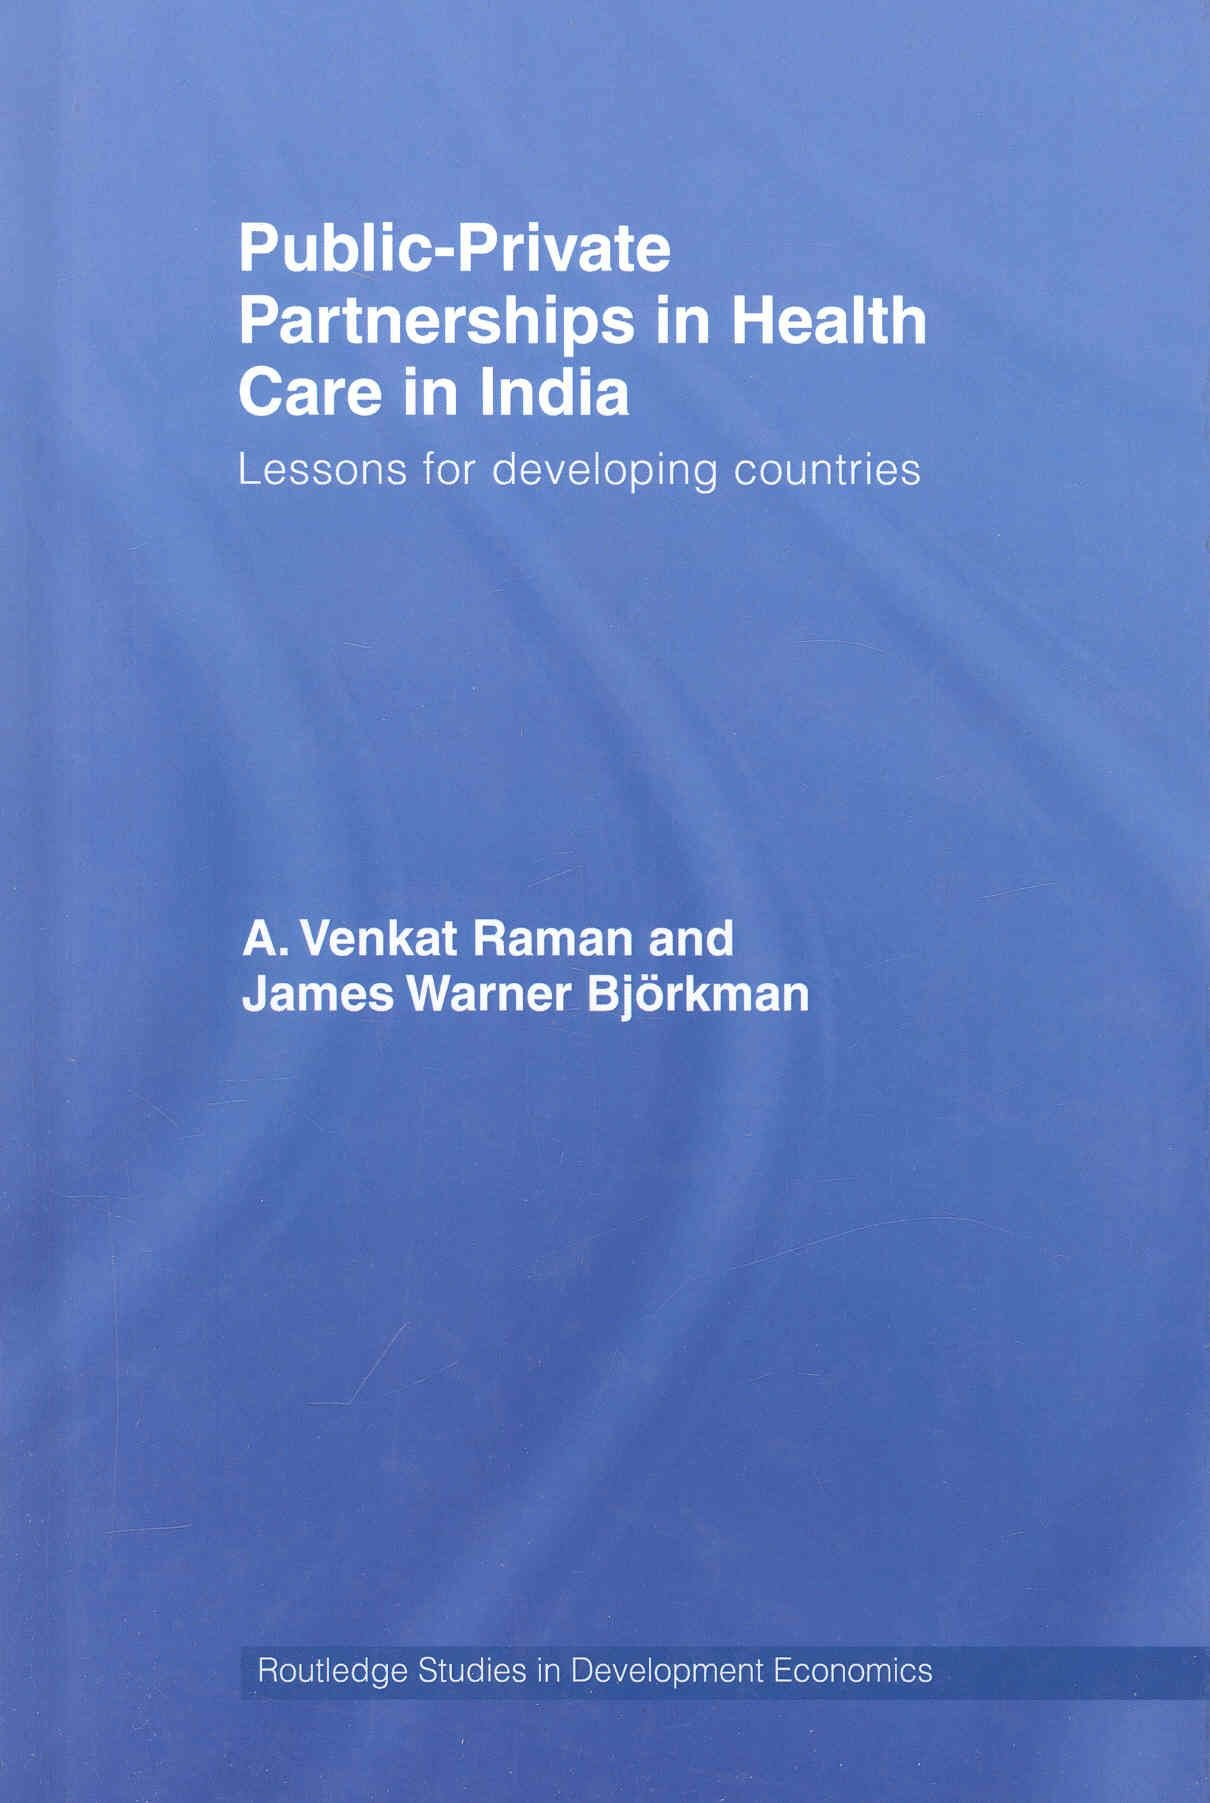 Public-private Partnerships in Health Care in India - A. Venkat Raman